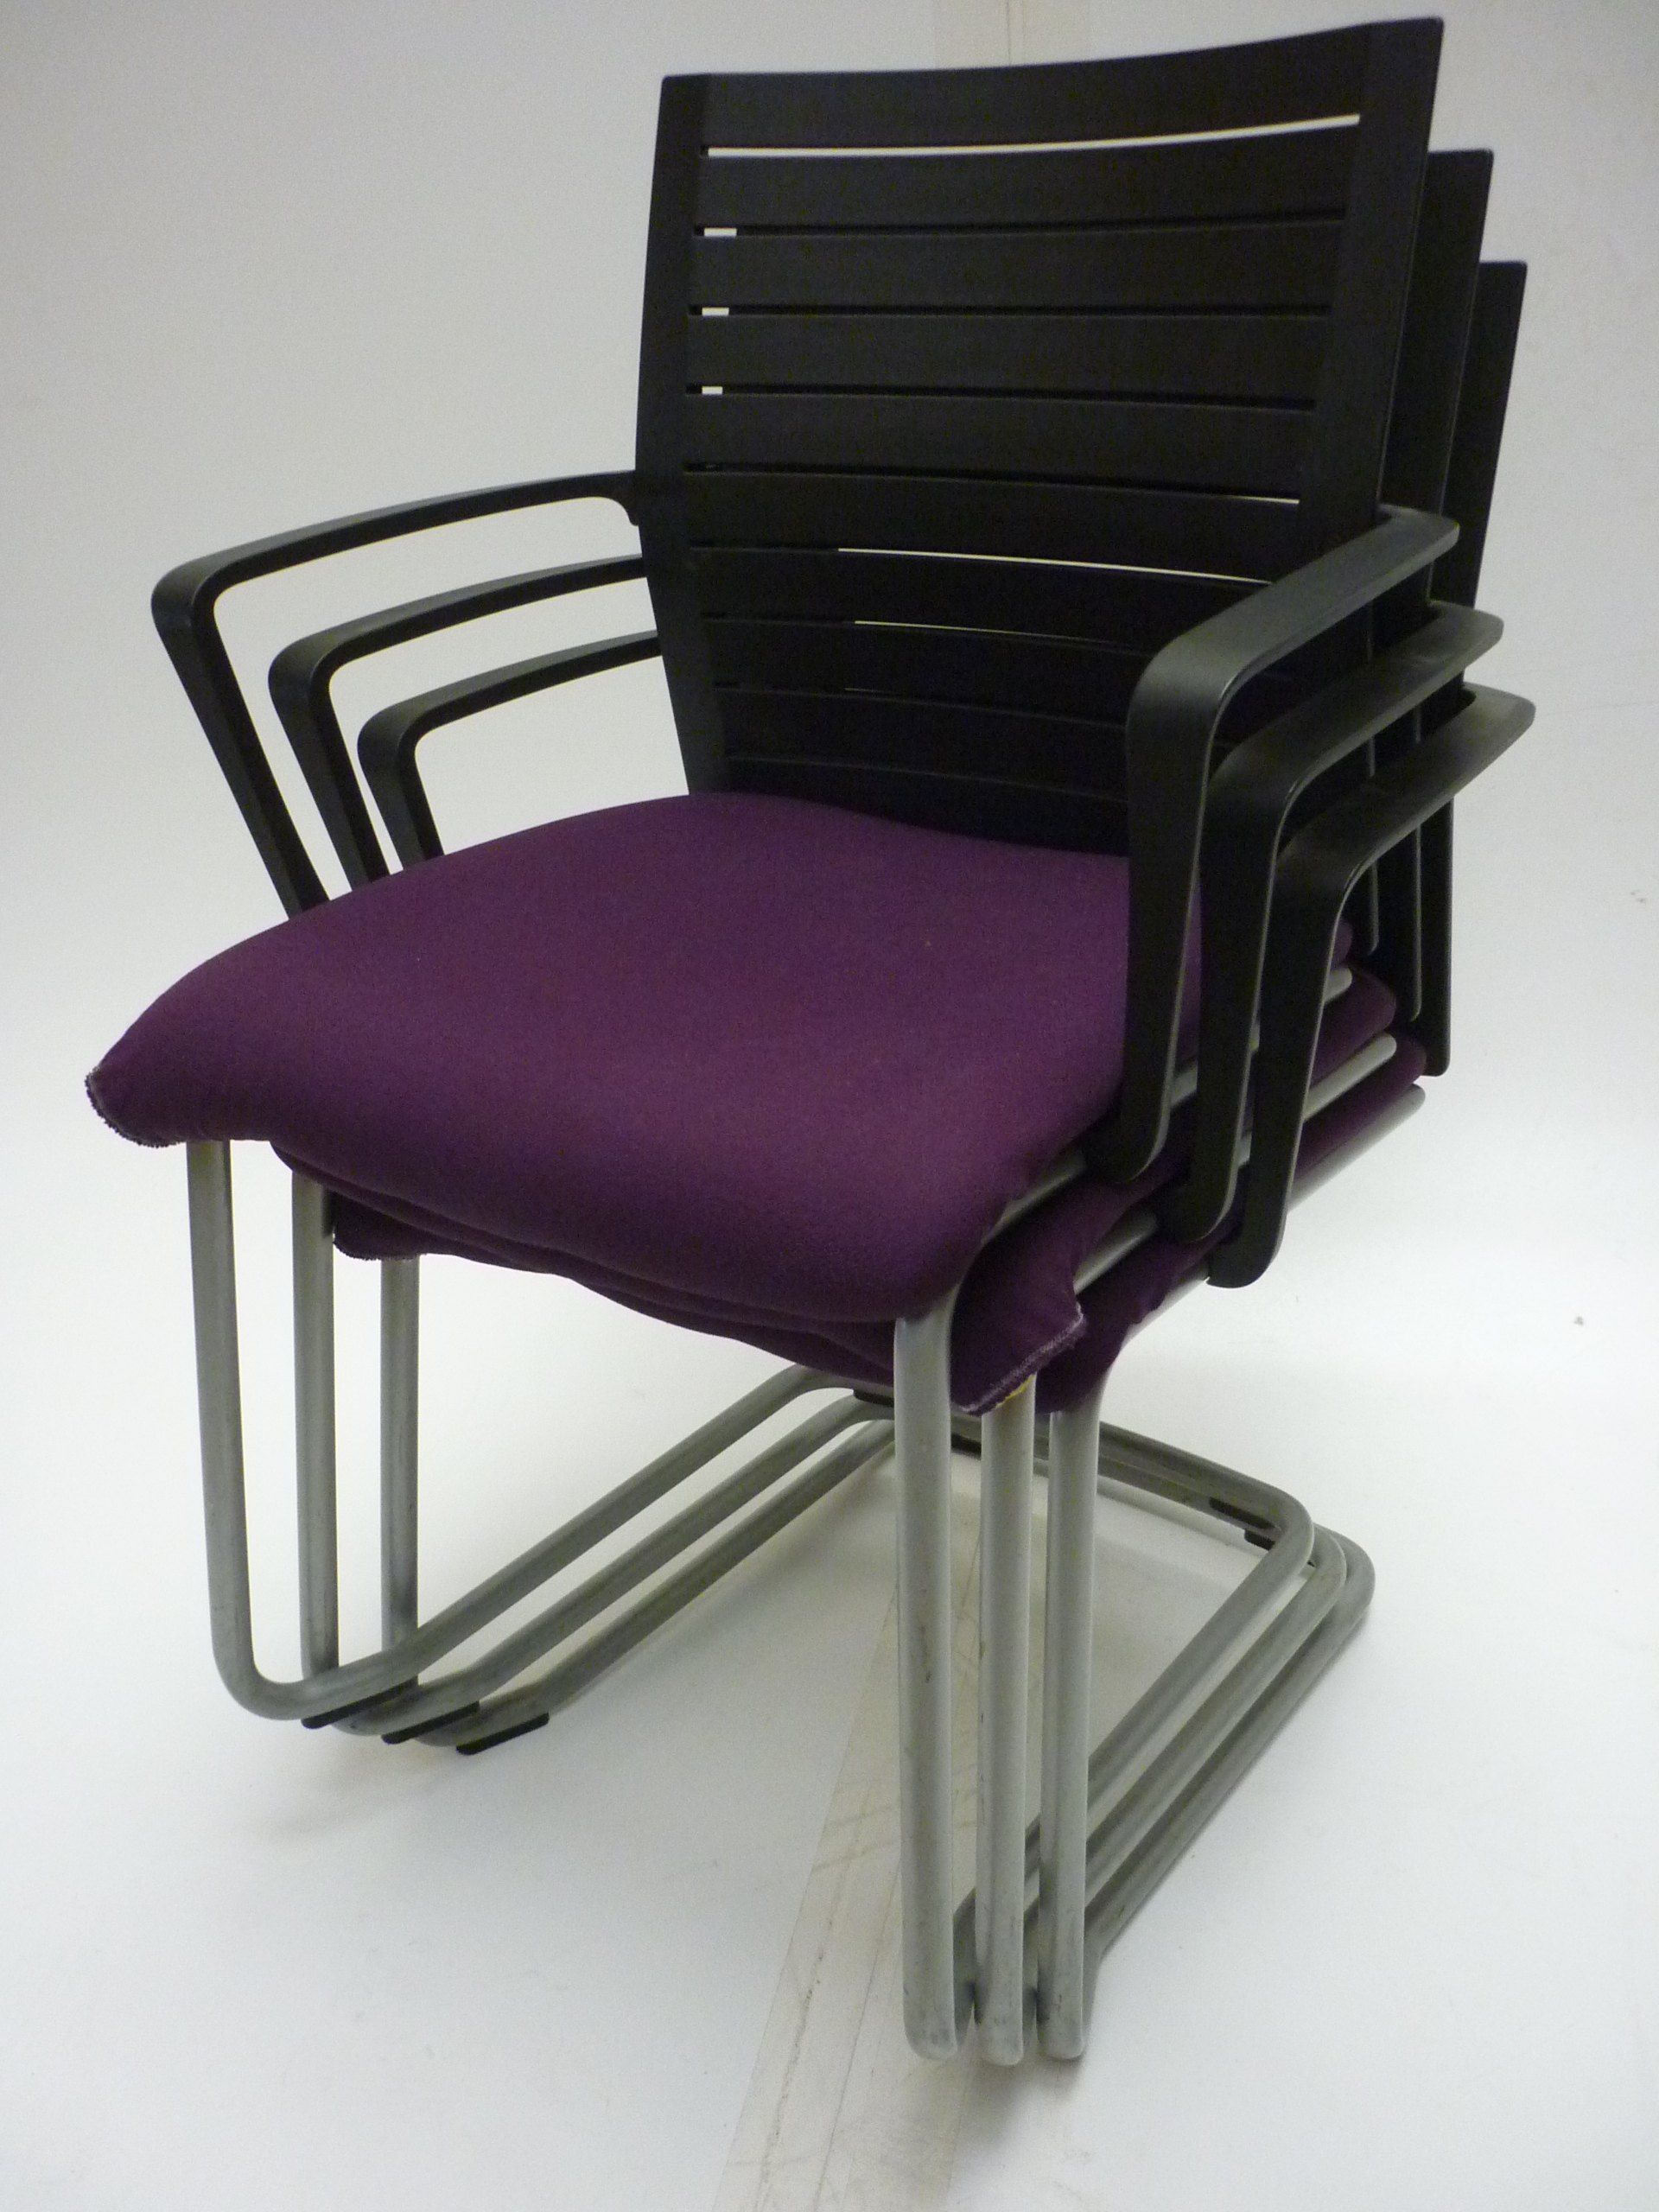 Steelcase Northside purpleblack stacking chair UK Delivery